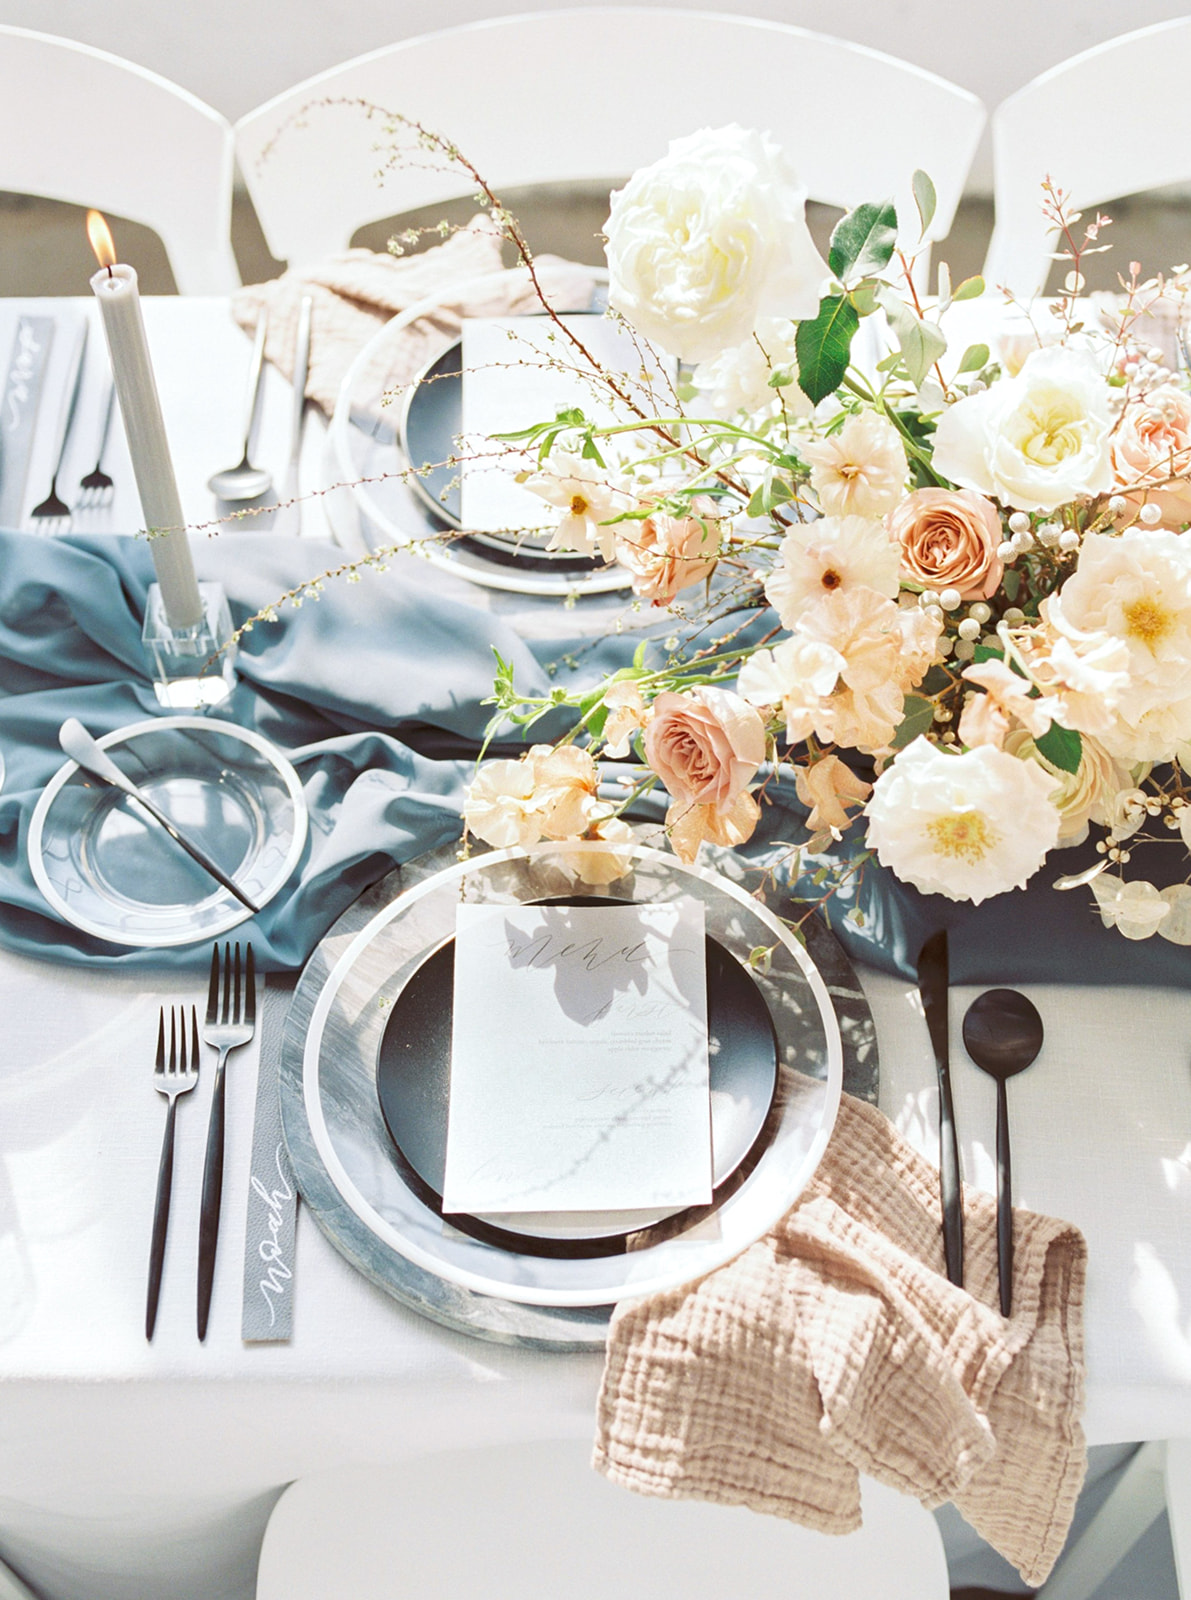 Modern romantic wedding table setting.jpg